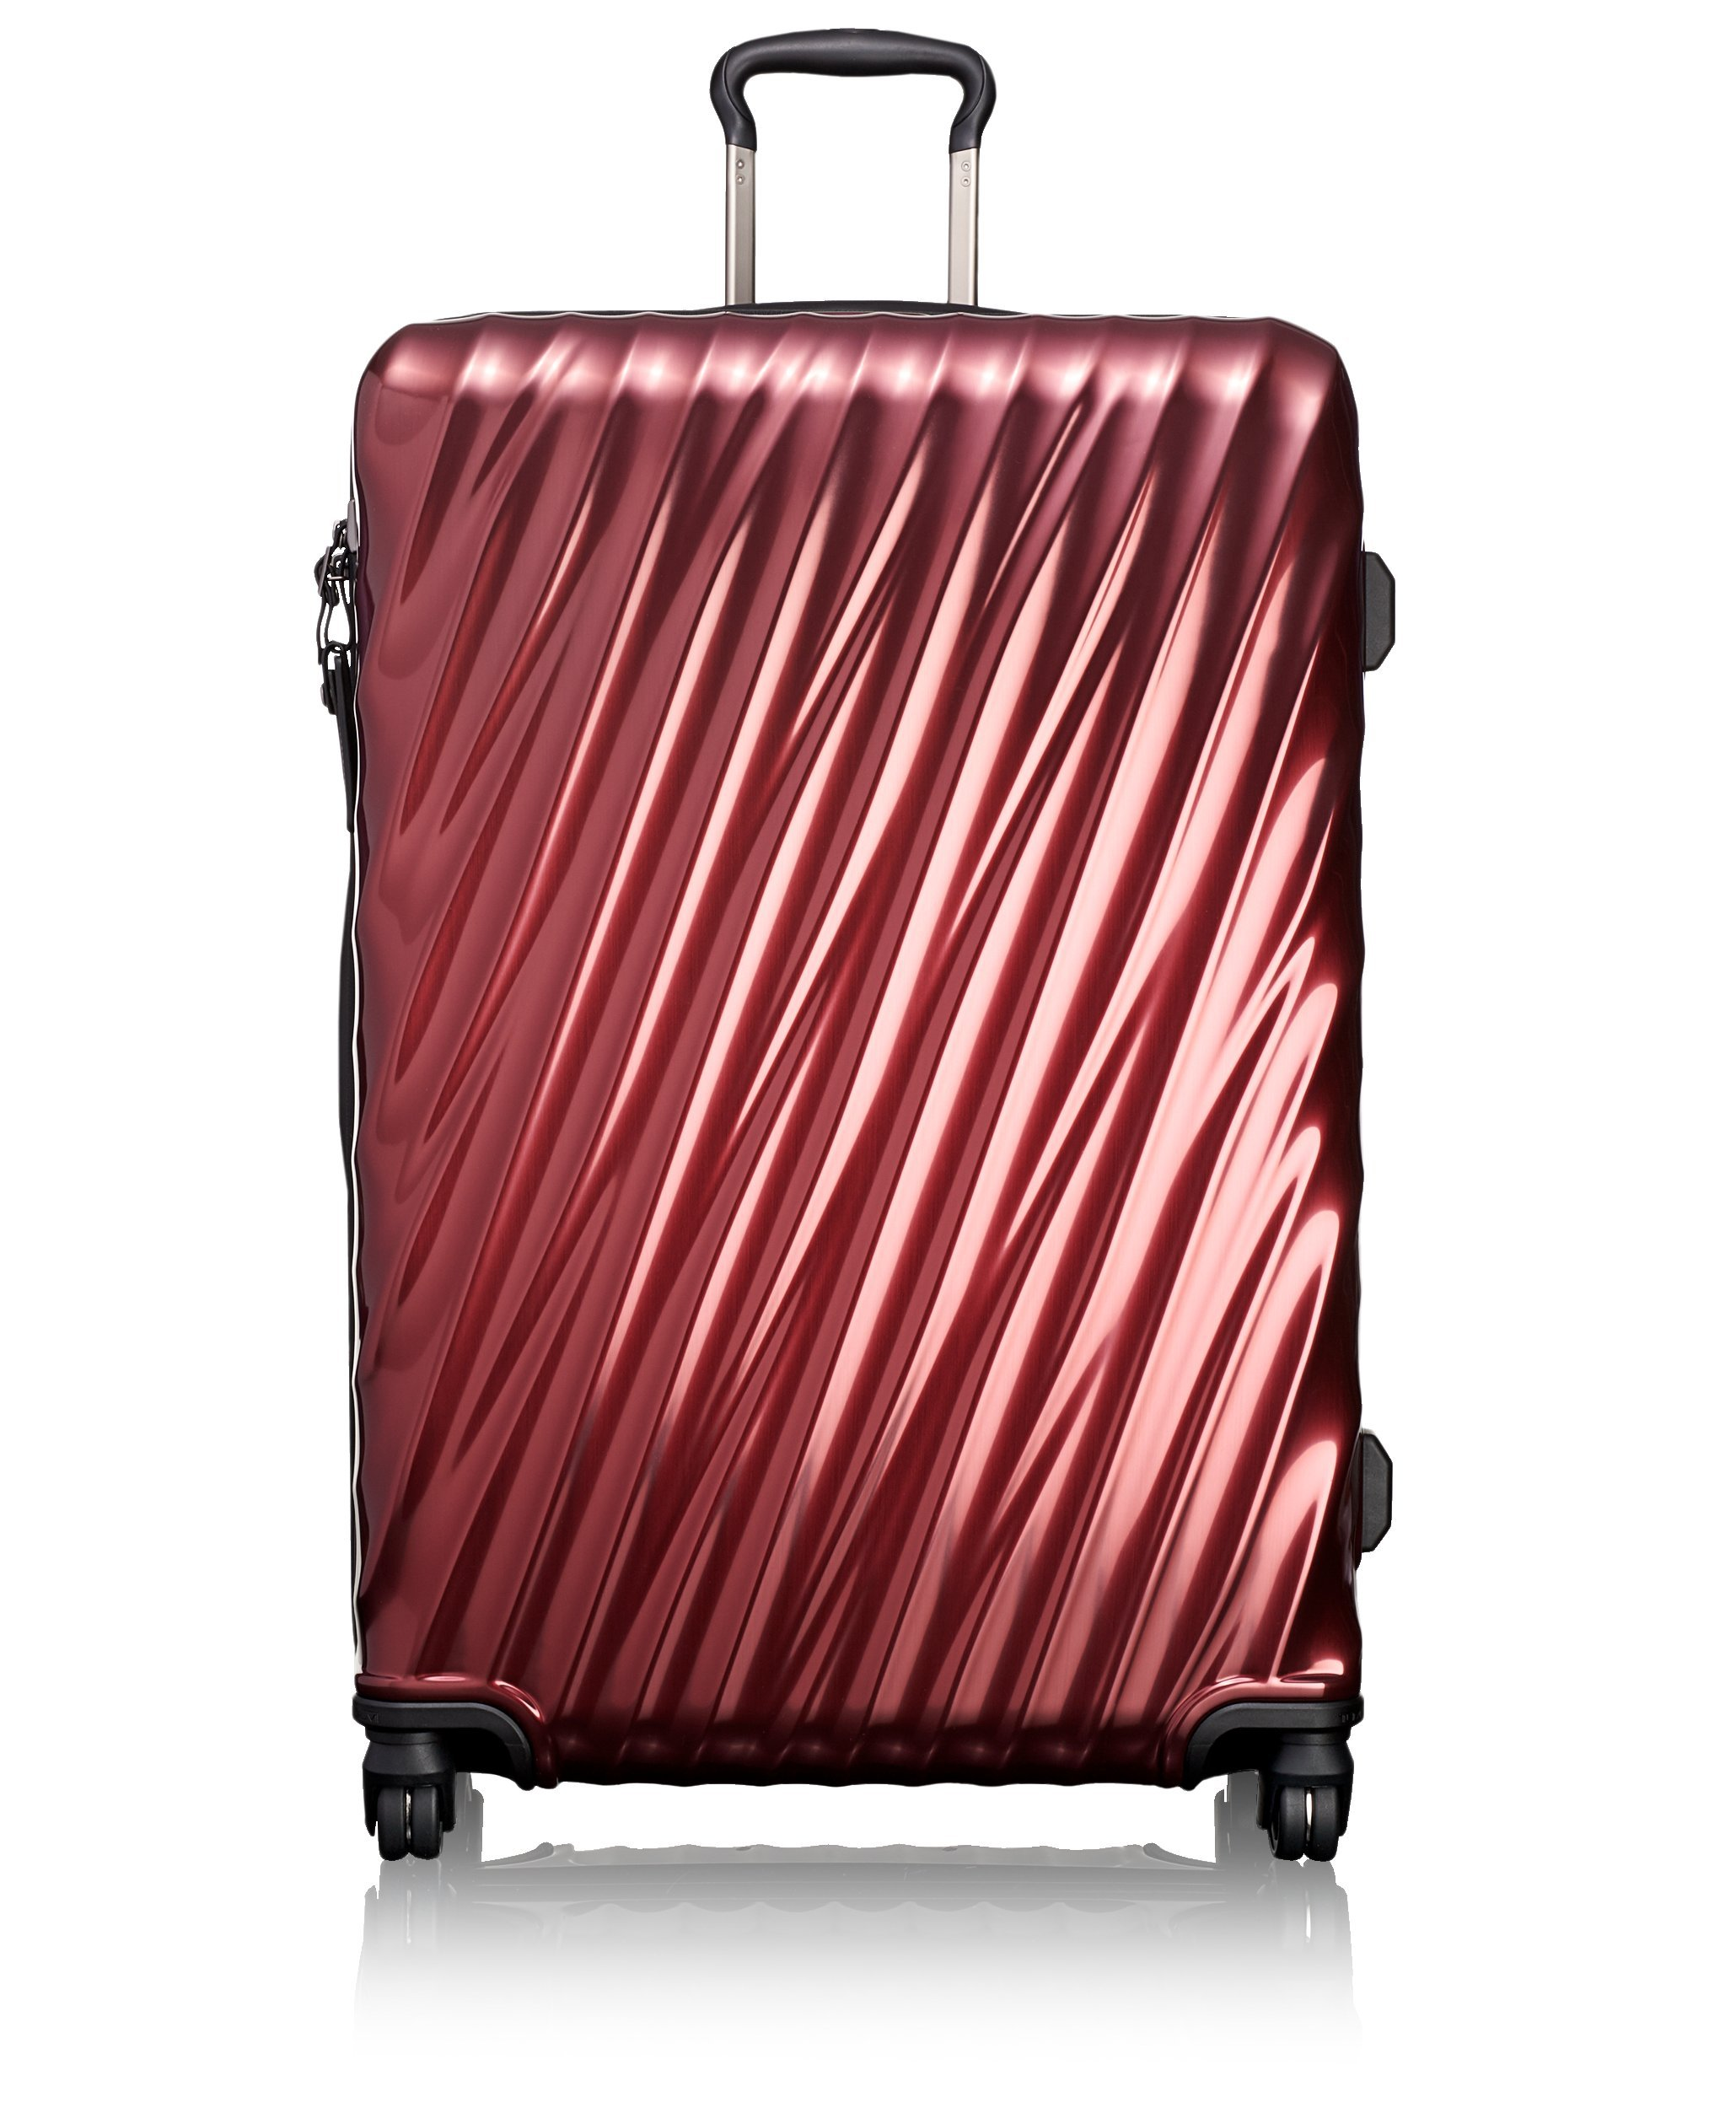 Tumi 19 Degree Extended Trip Packing Case, Bordeaux by Tumi